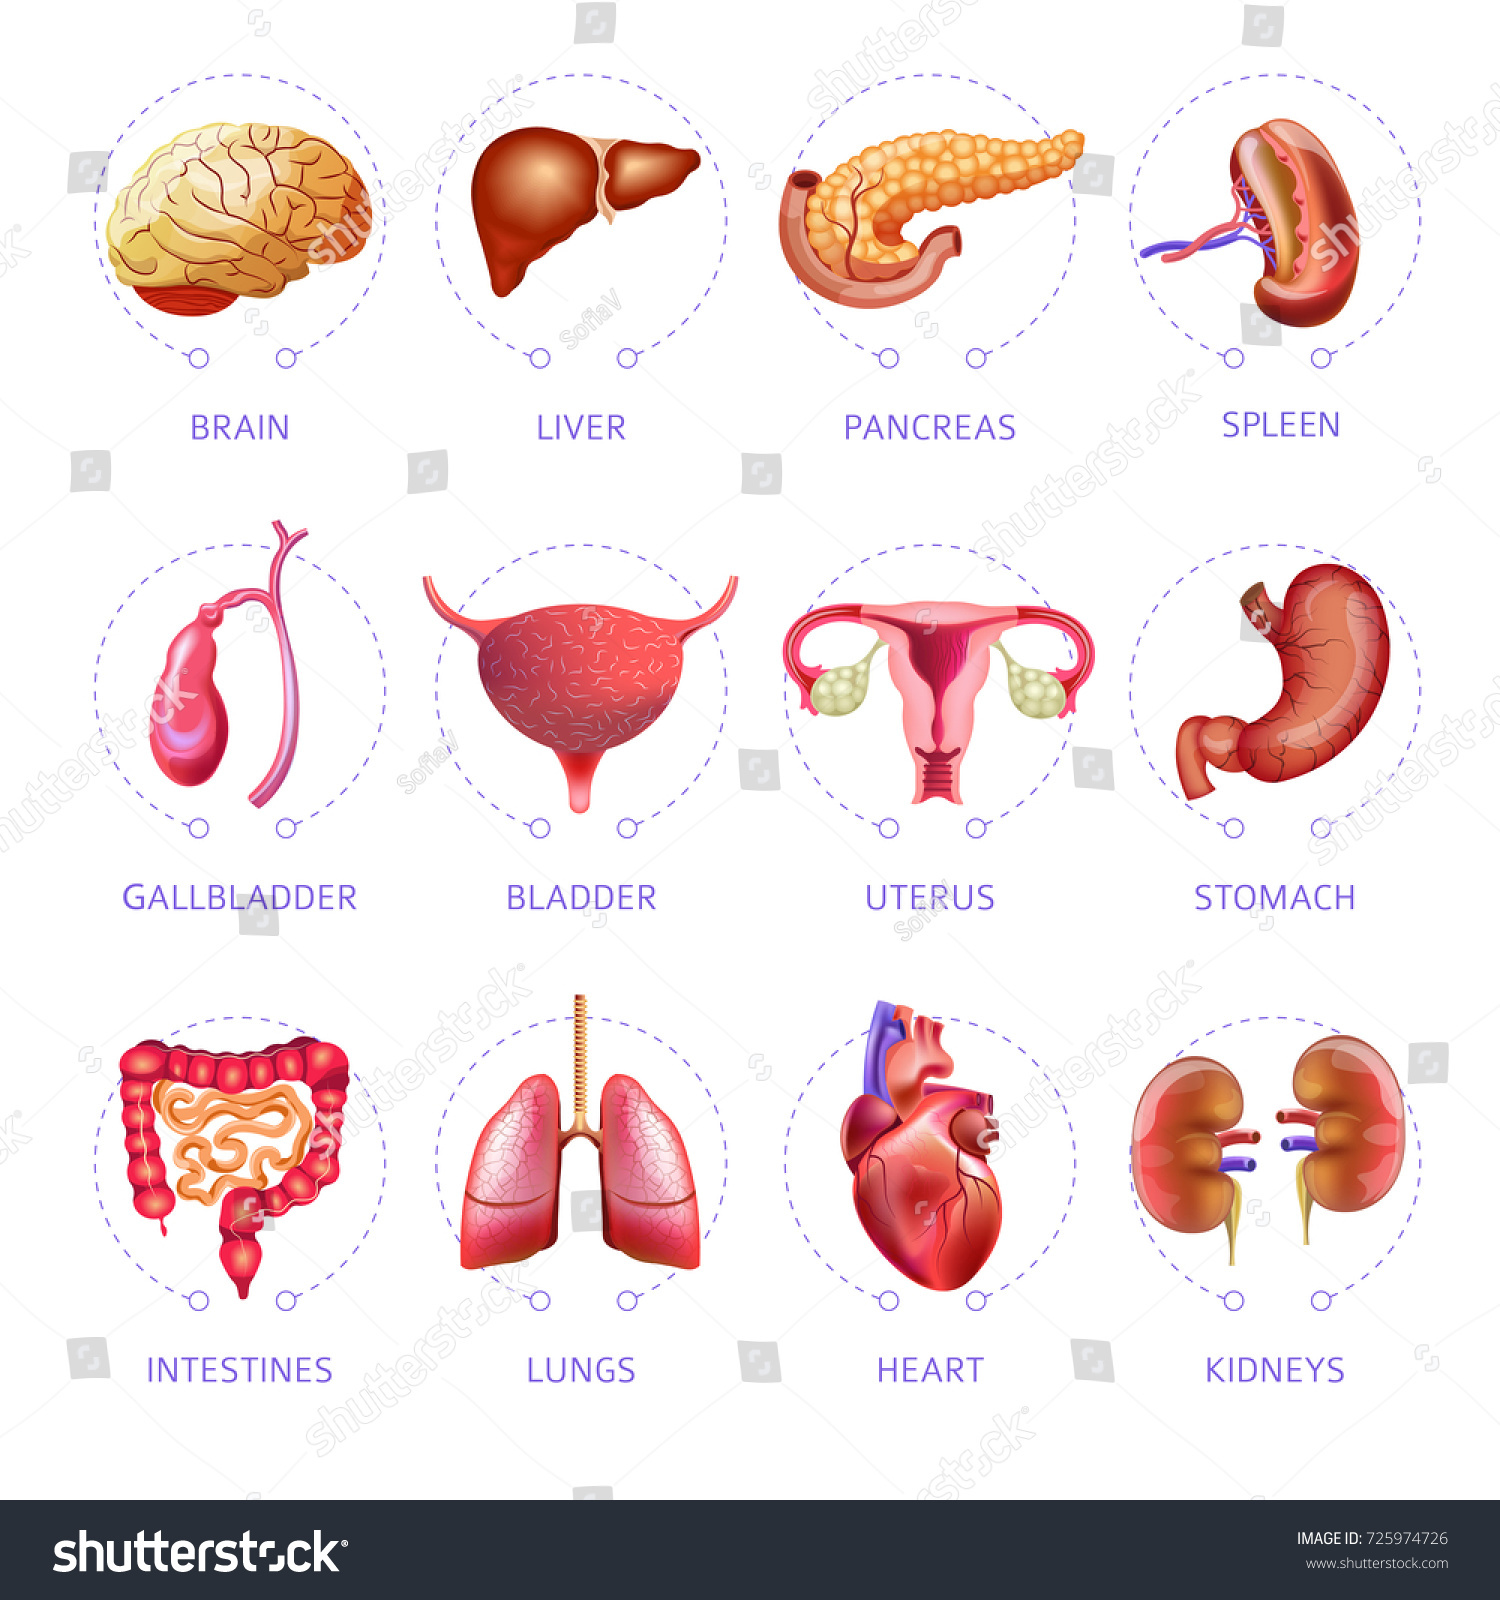 Human Body Internal Organs Medical Vector Stock Vector Royalty Free